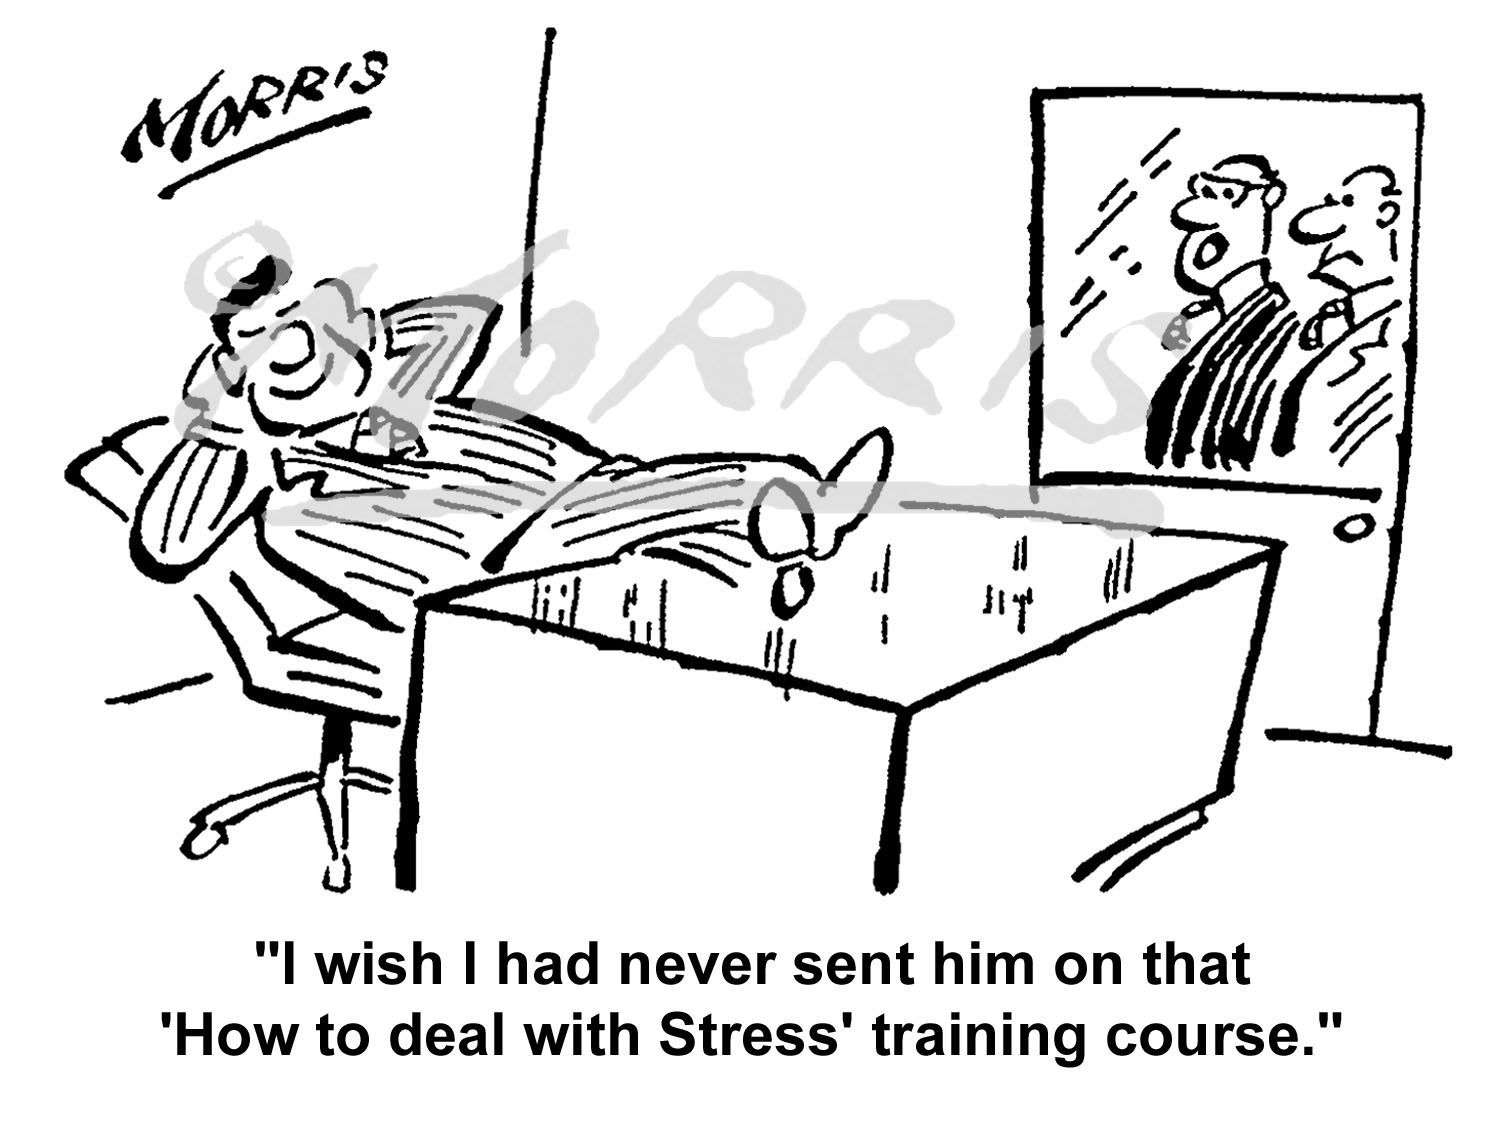 Office stress training course cartoon – Ref: 5086bw